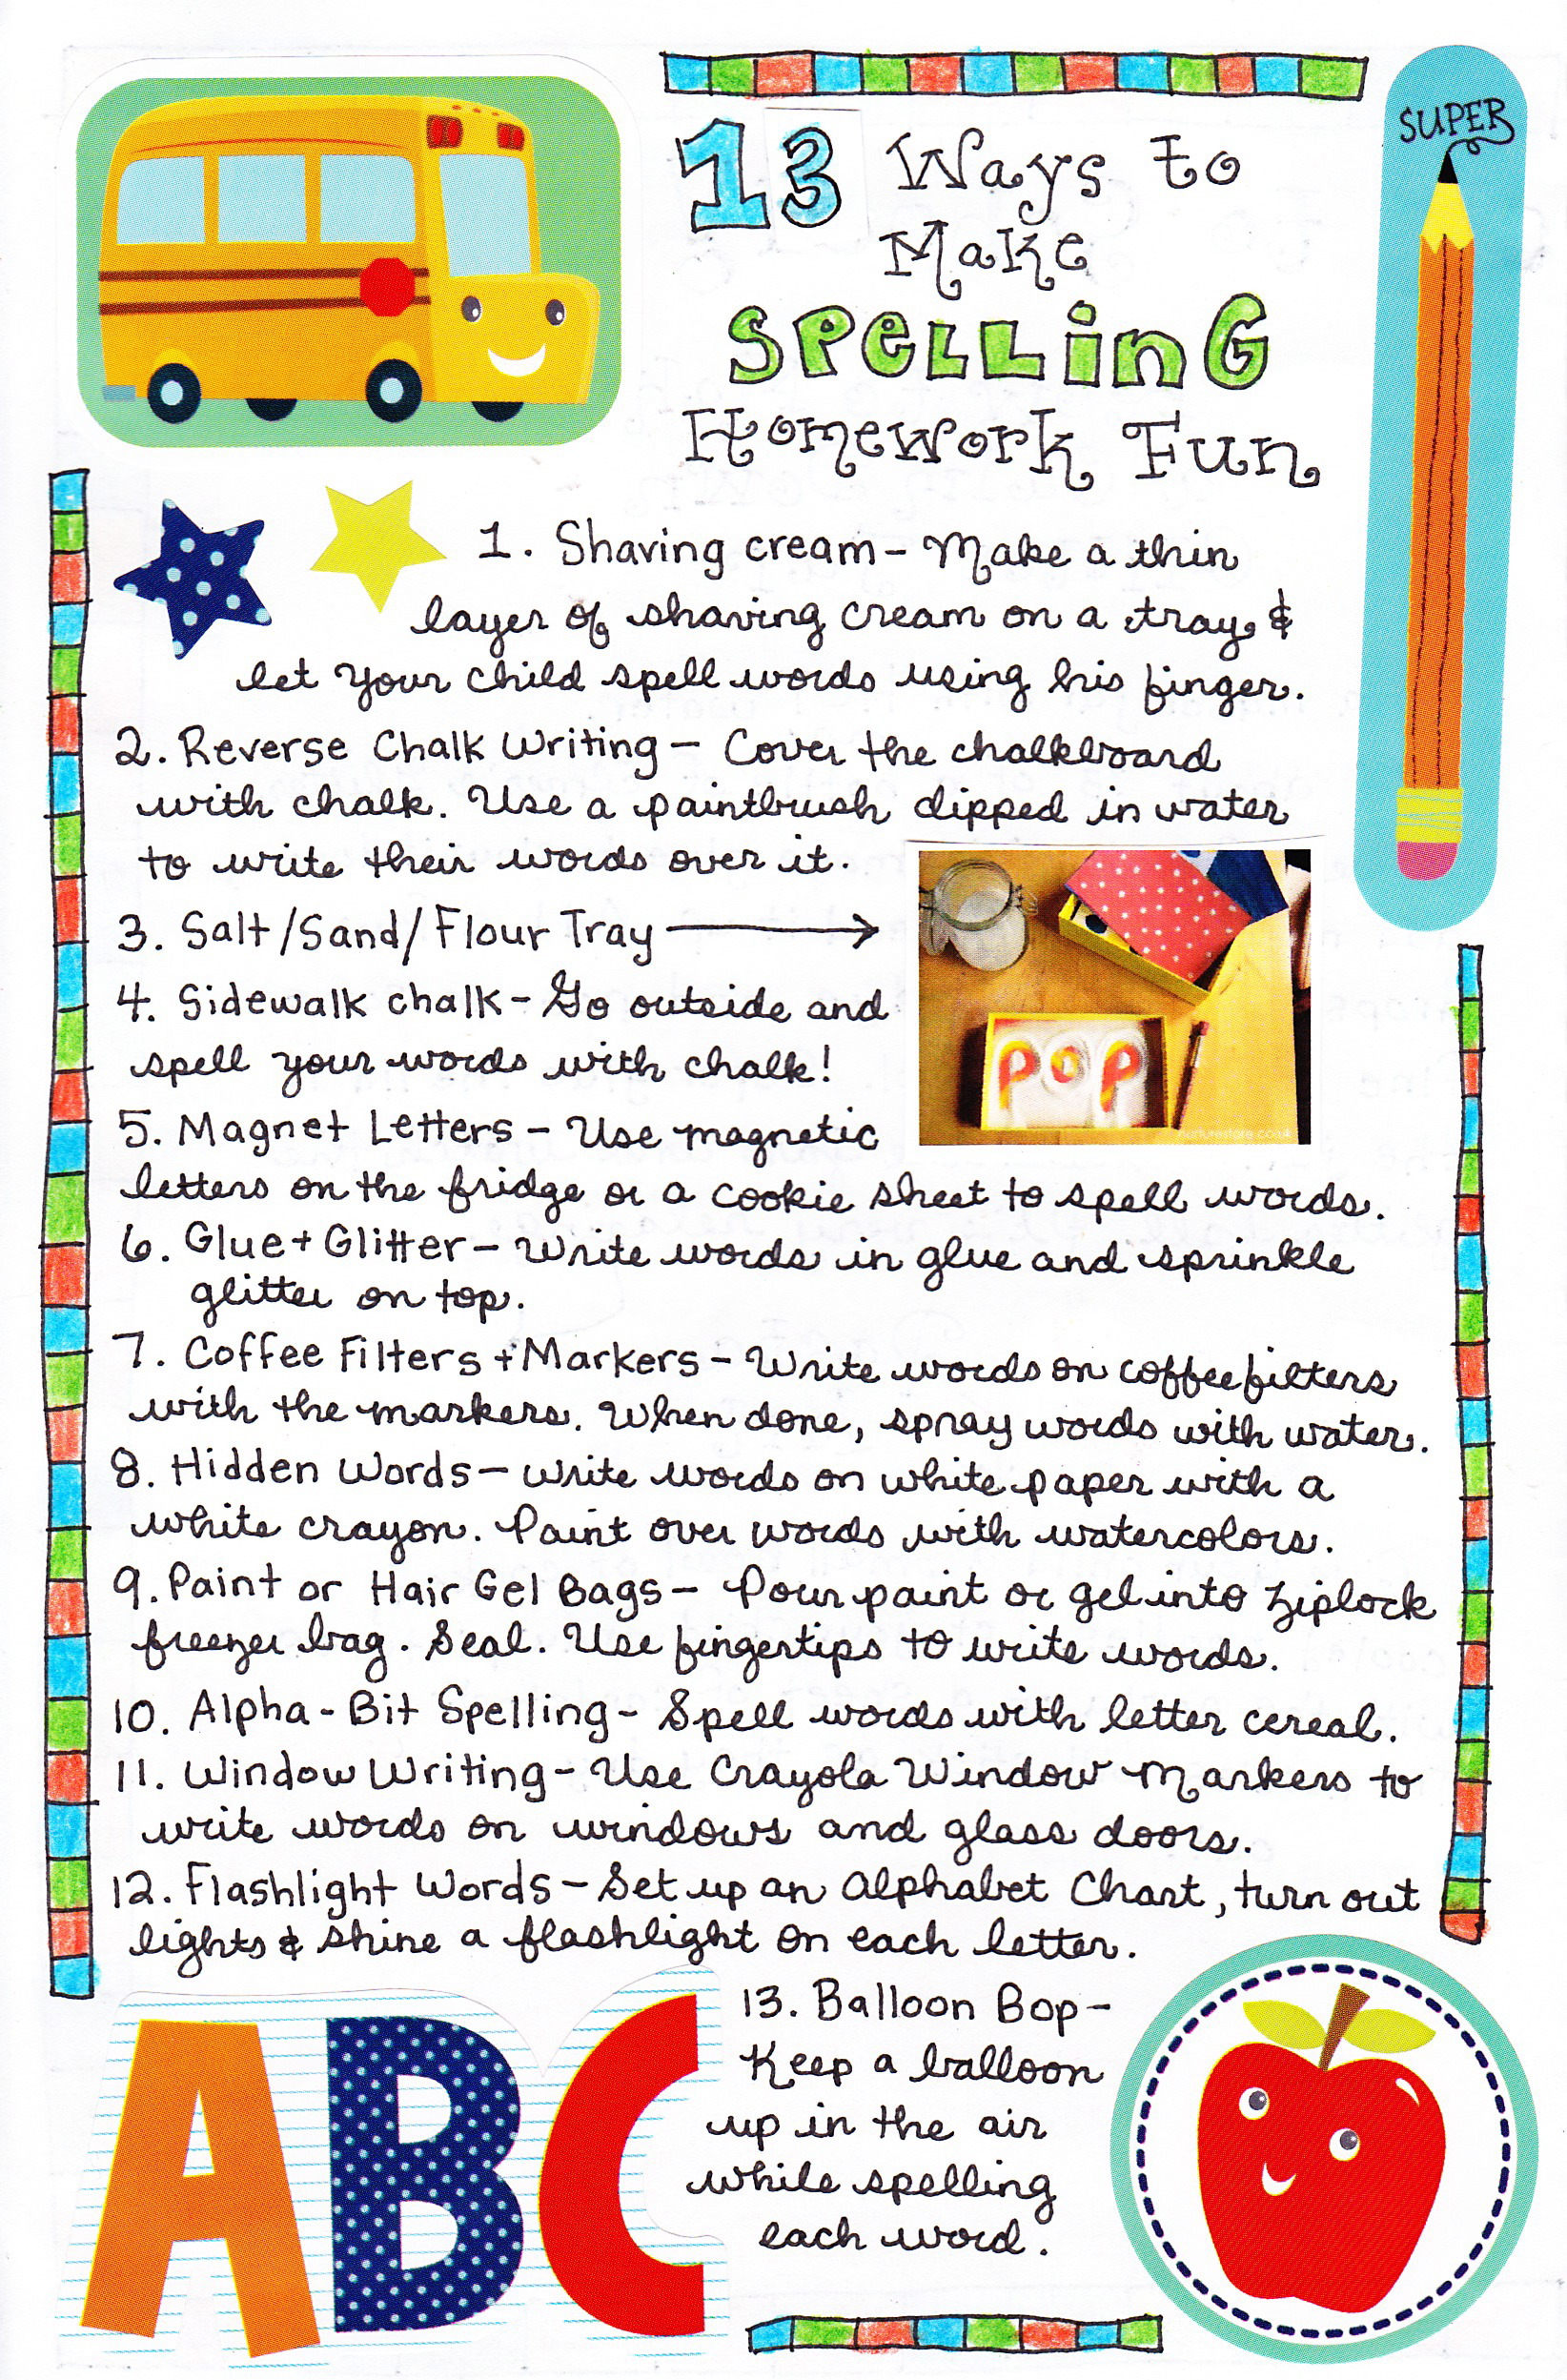 13 Ways to Make Spelling Practice Fun - Happy Home Fairy